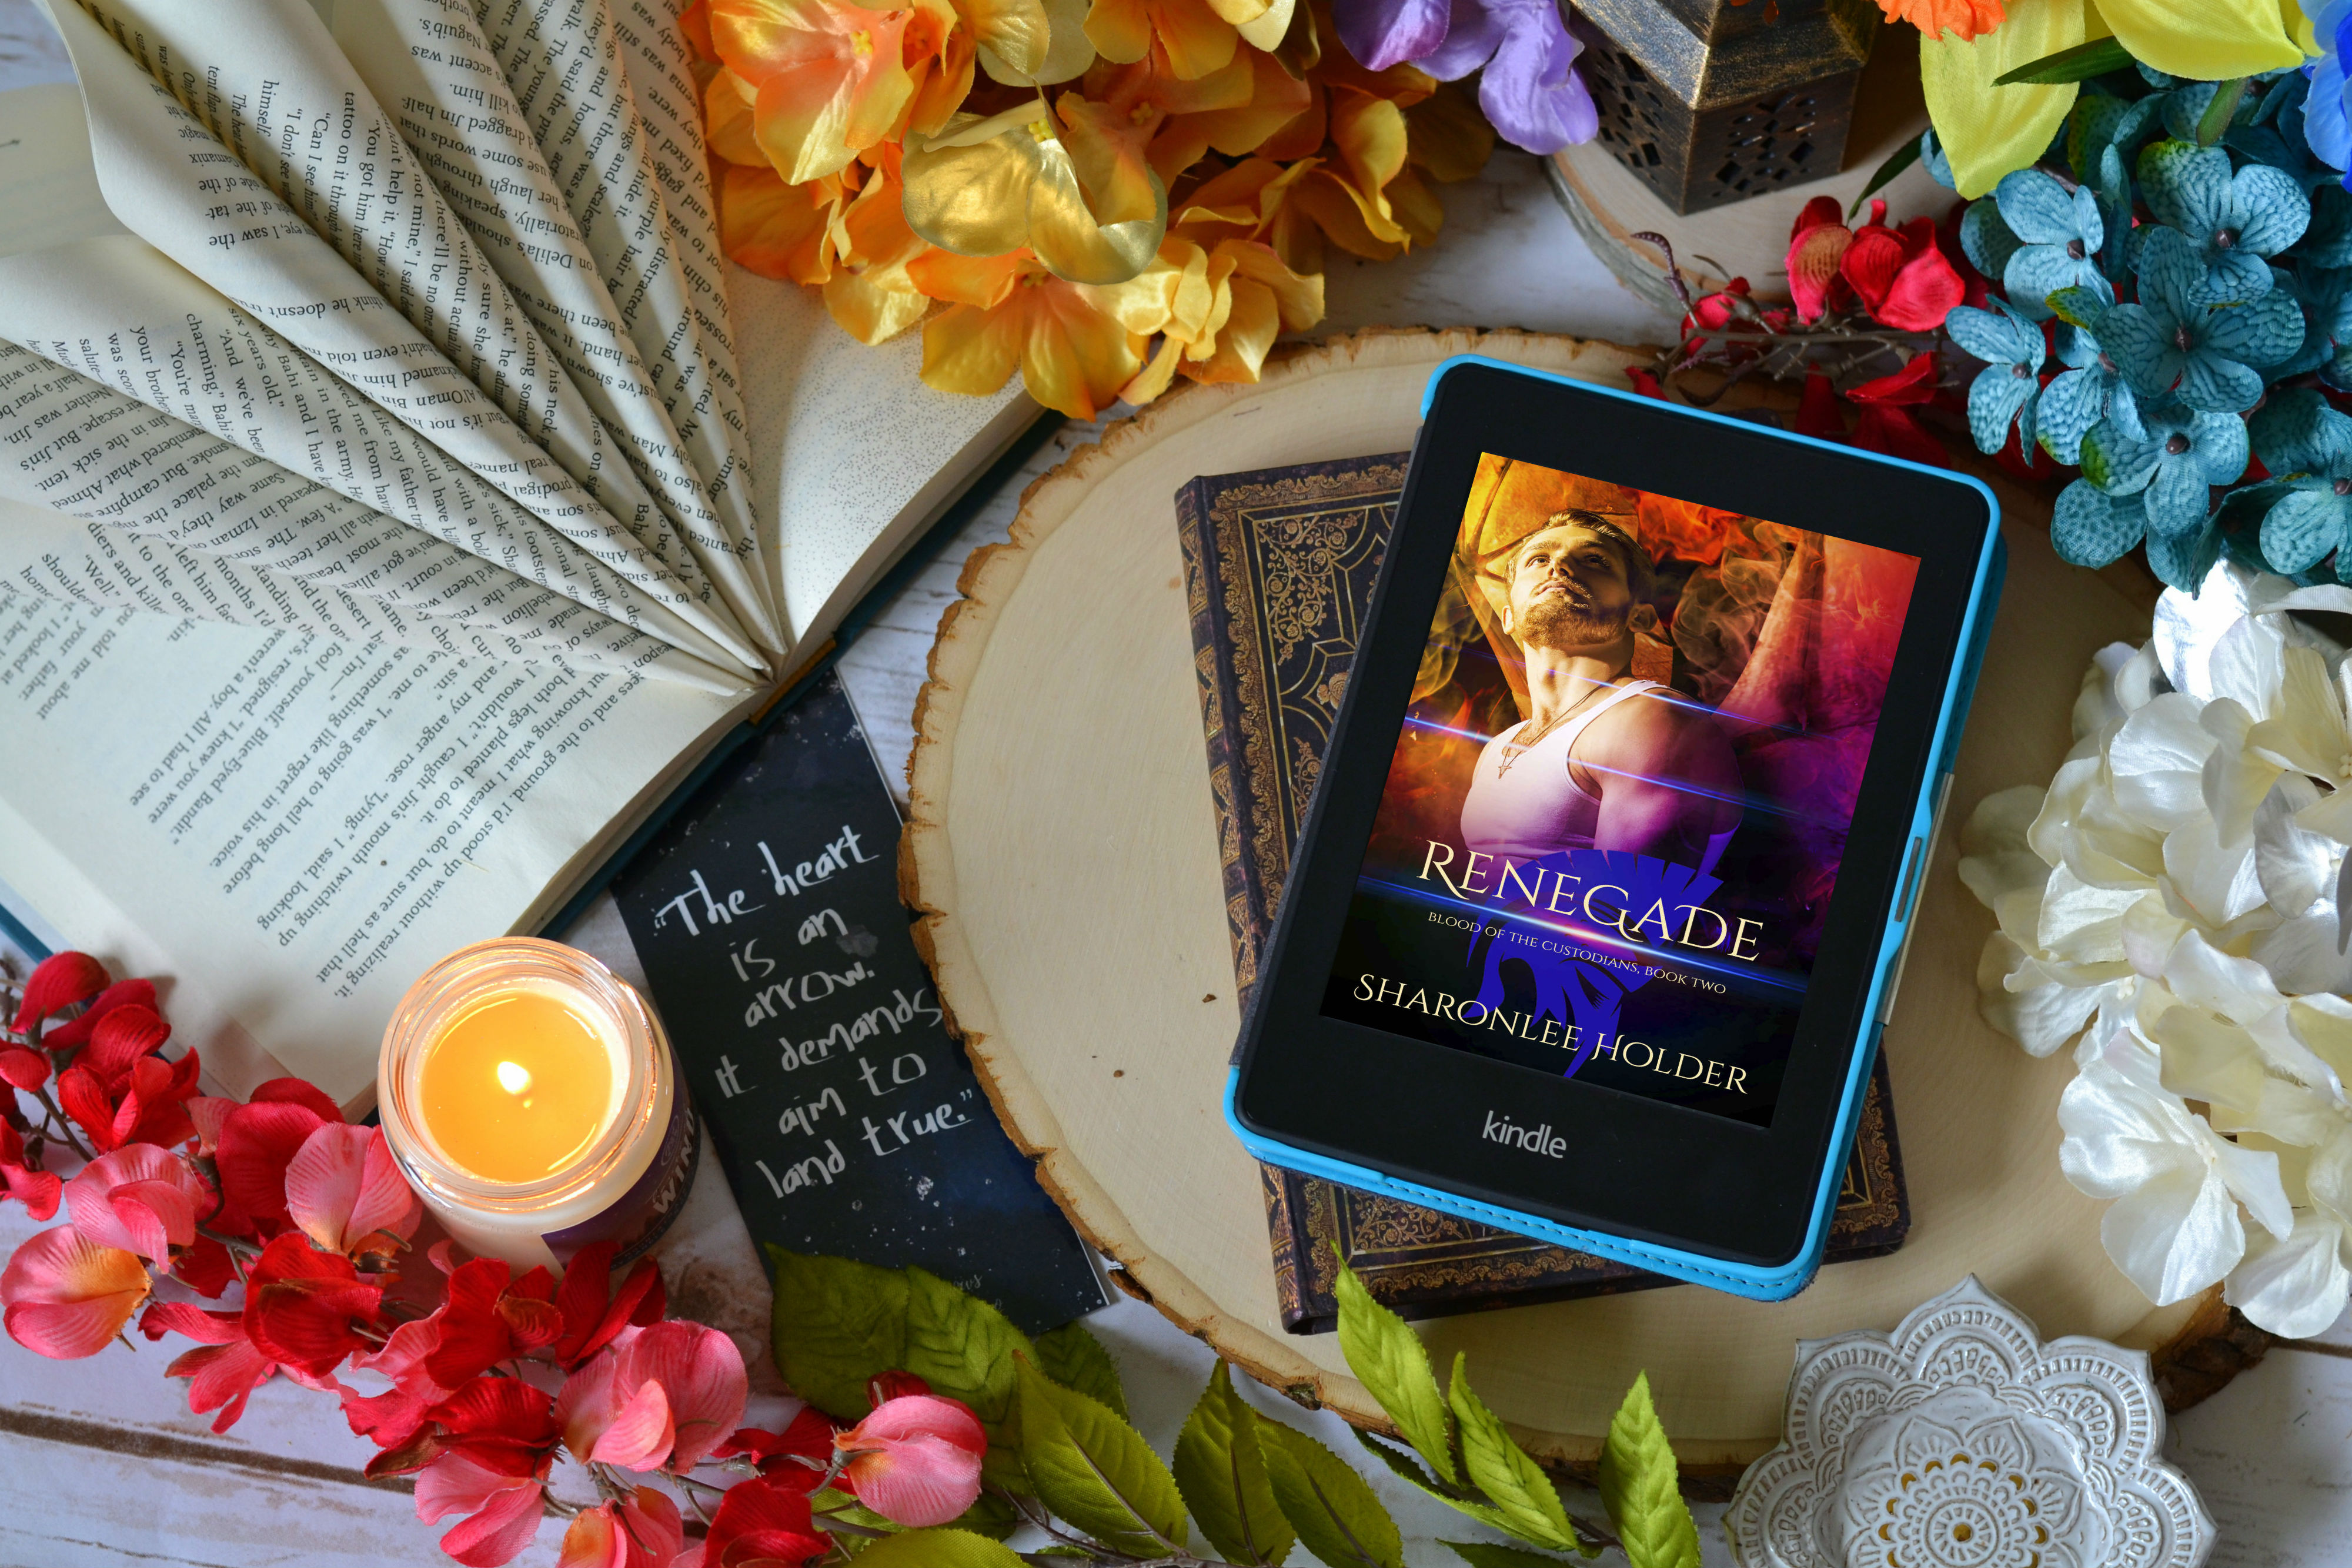 Renegade by Sharonlee Holder   ARC Review